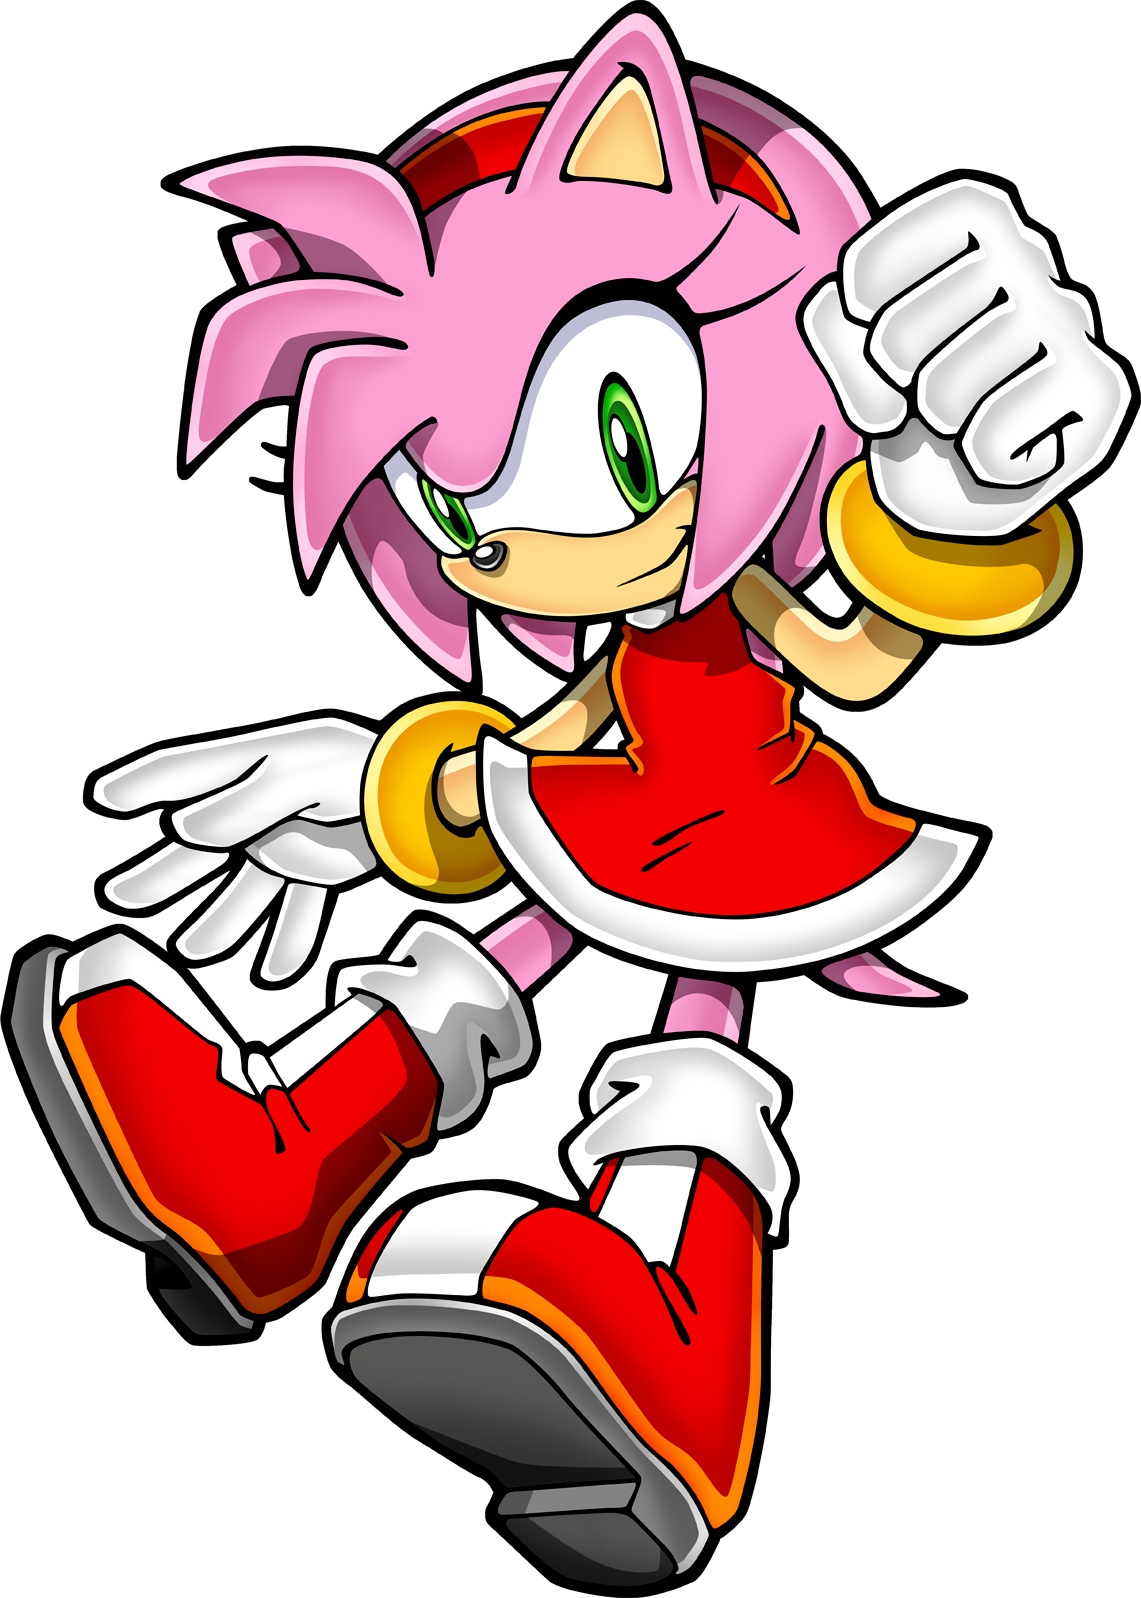 Adventure book clipart image free stock Amy Rose photo: Sonic Adventure This photo was uploaded by ... image free stock